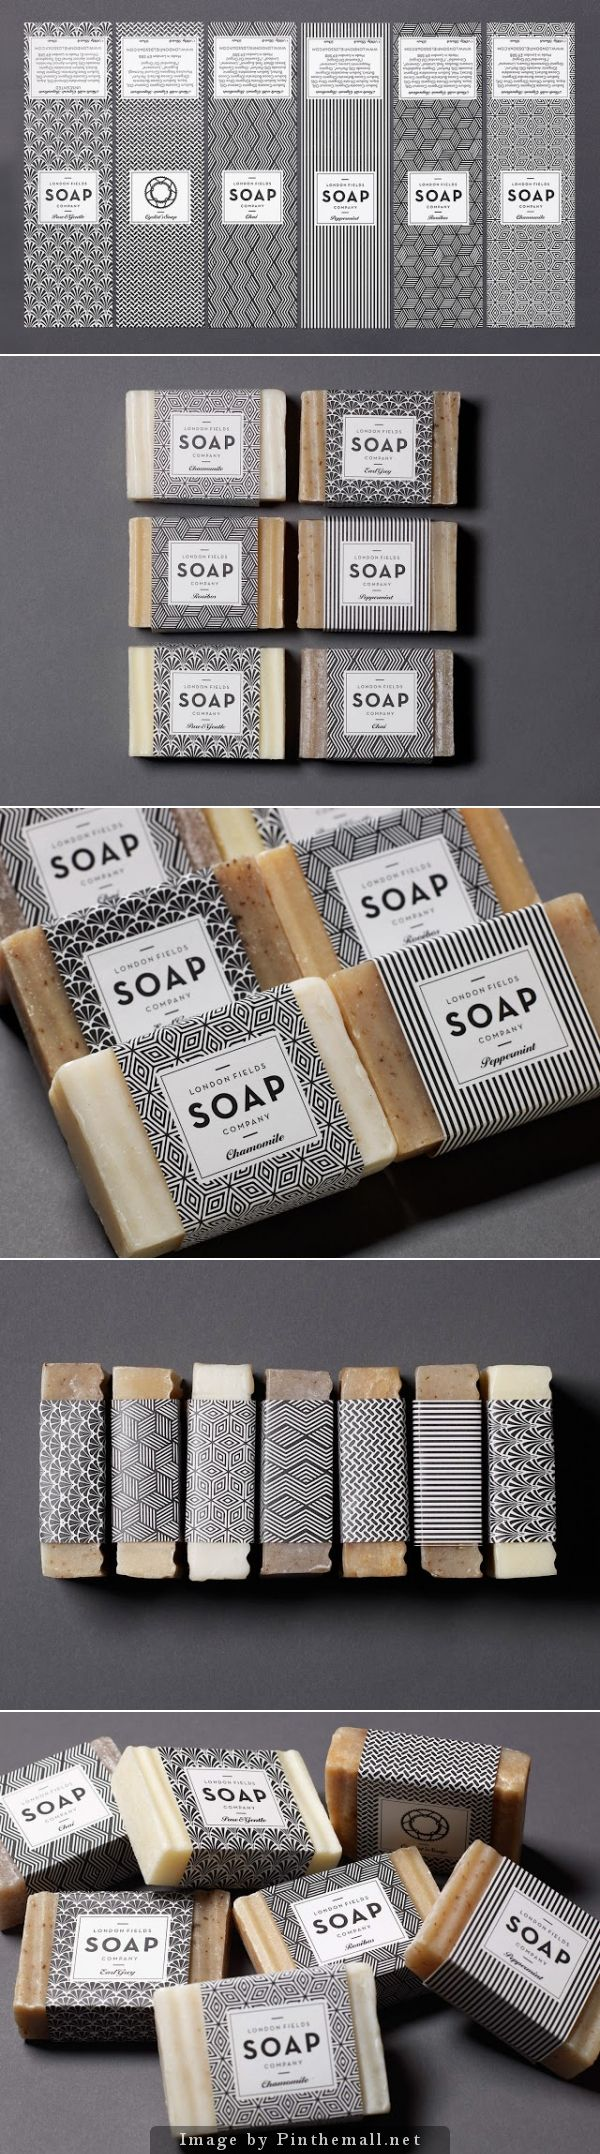 Agency: One Darnley Road Designer: Roisin McAvinney Client: London Fields Soap Company Type Of Work: Commercial Work Country: United Kingdom